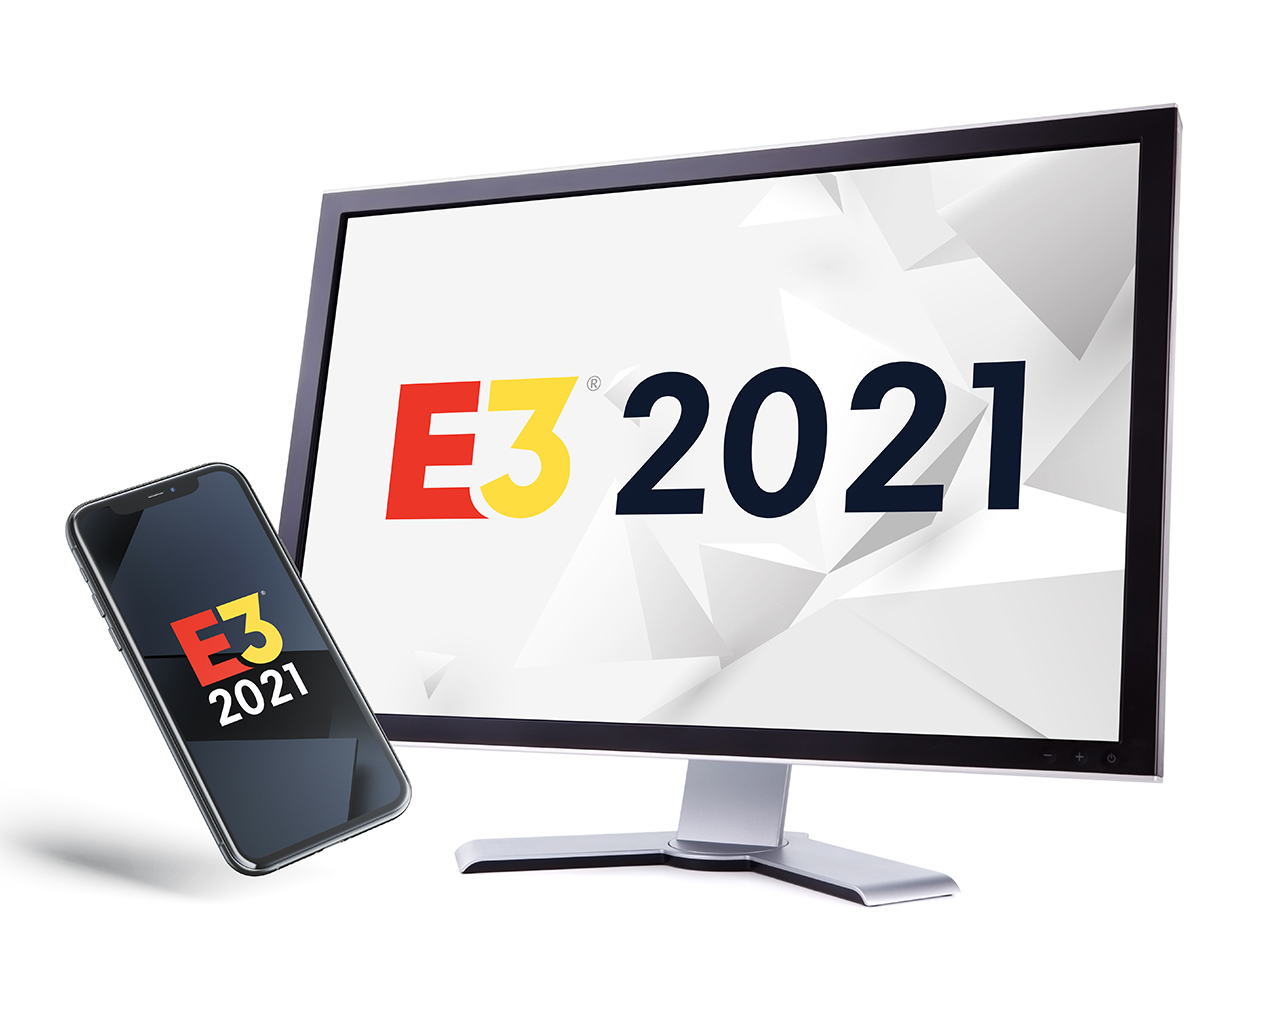 Phone and monitor screens with the E3 2021 logos